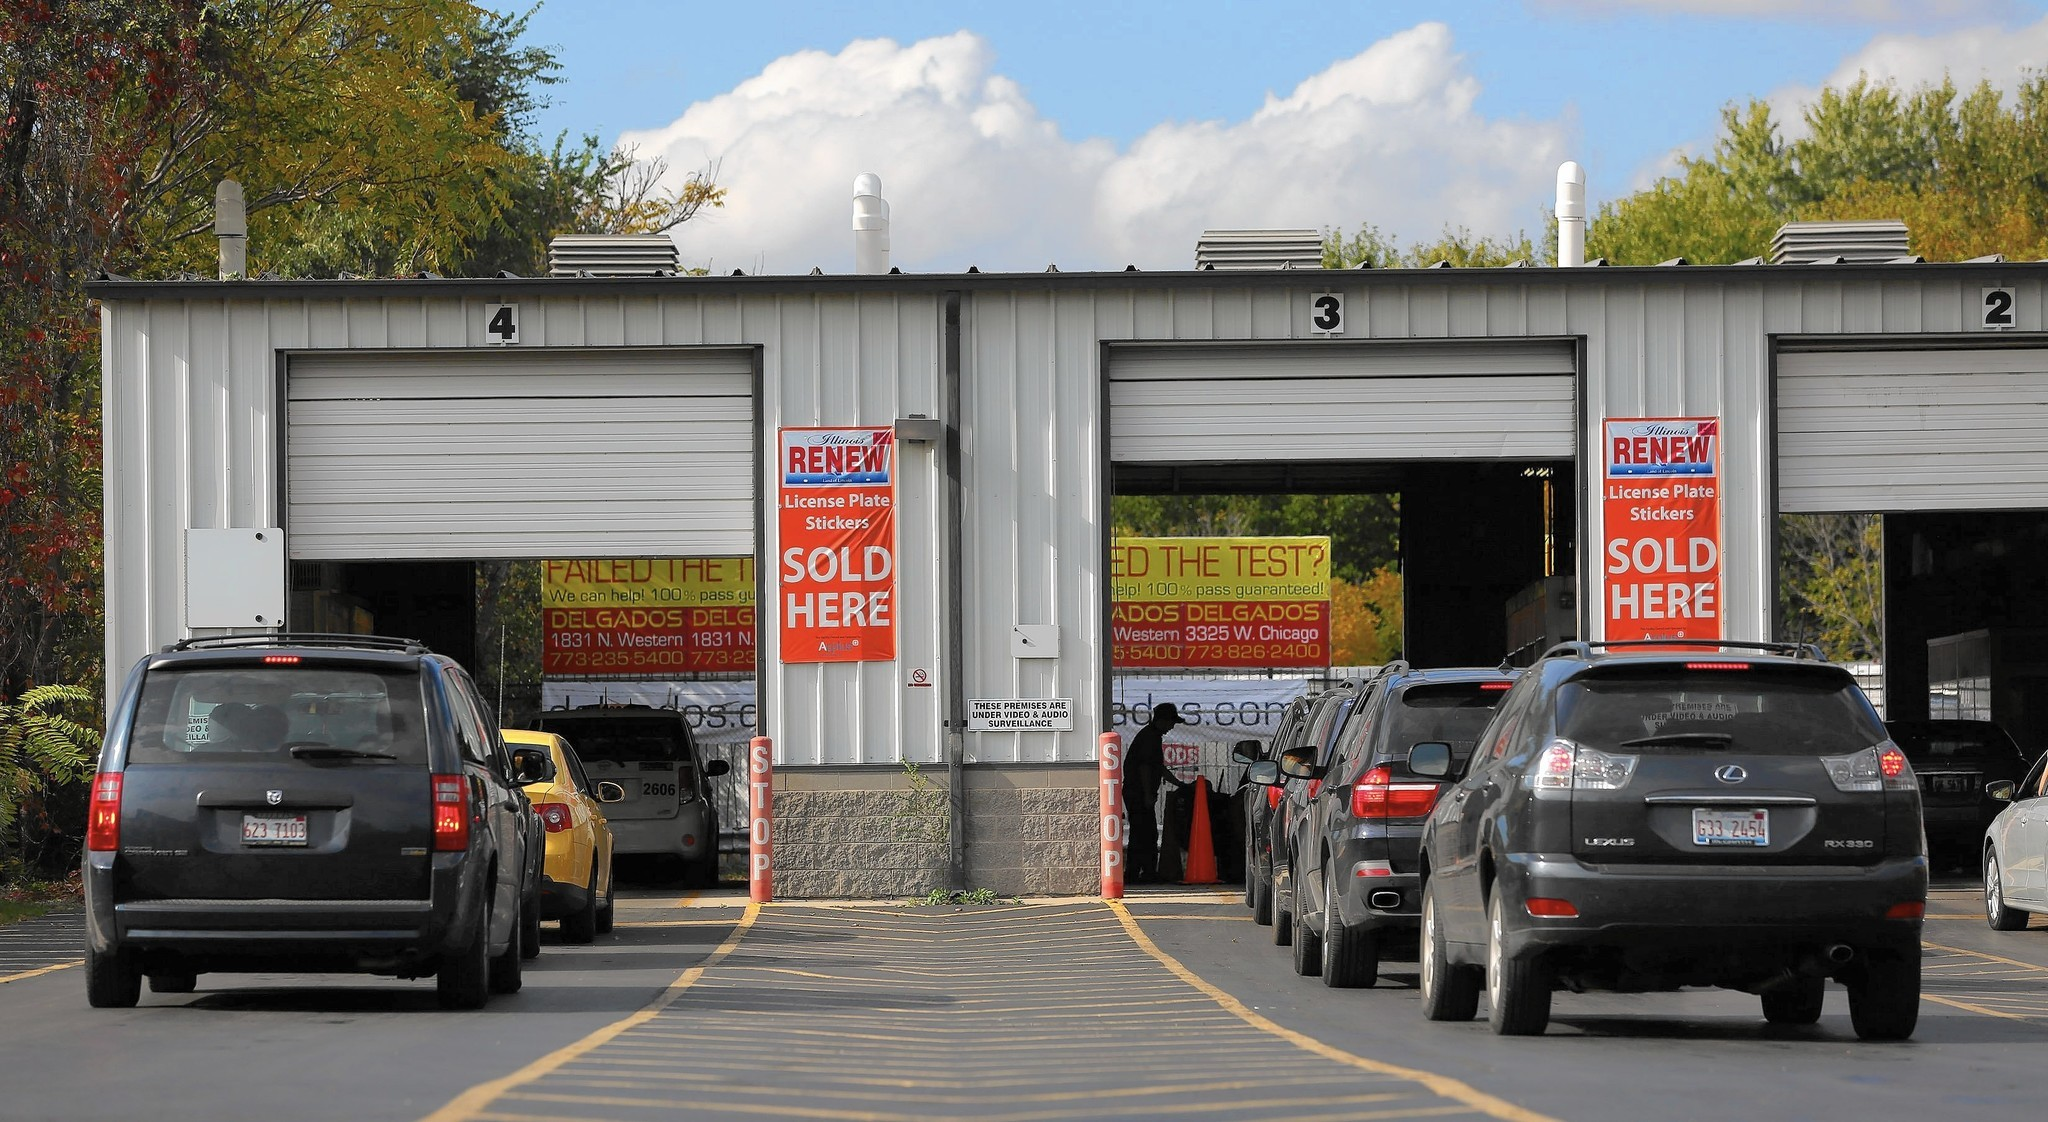 Chicago Will Have No Vehicle Emissions Test Facilities After State Closures Tribune